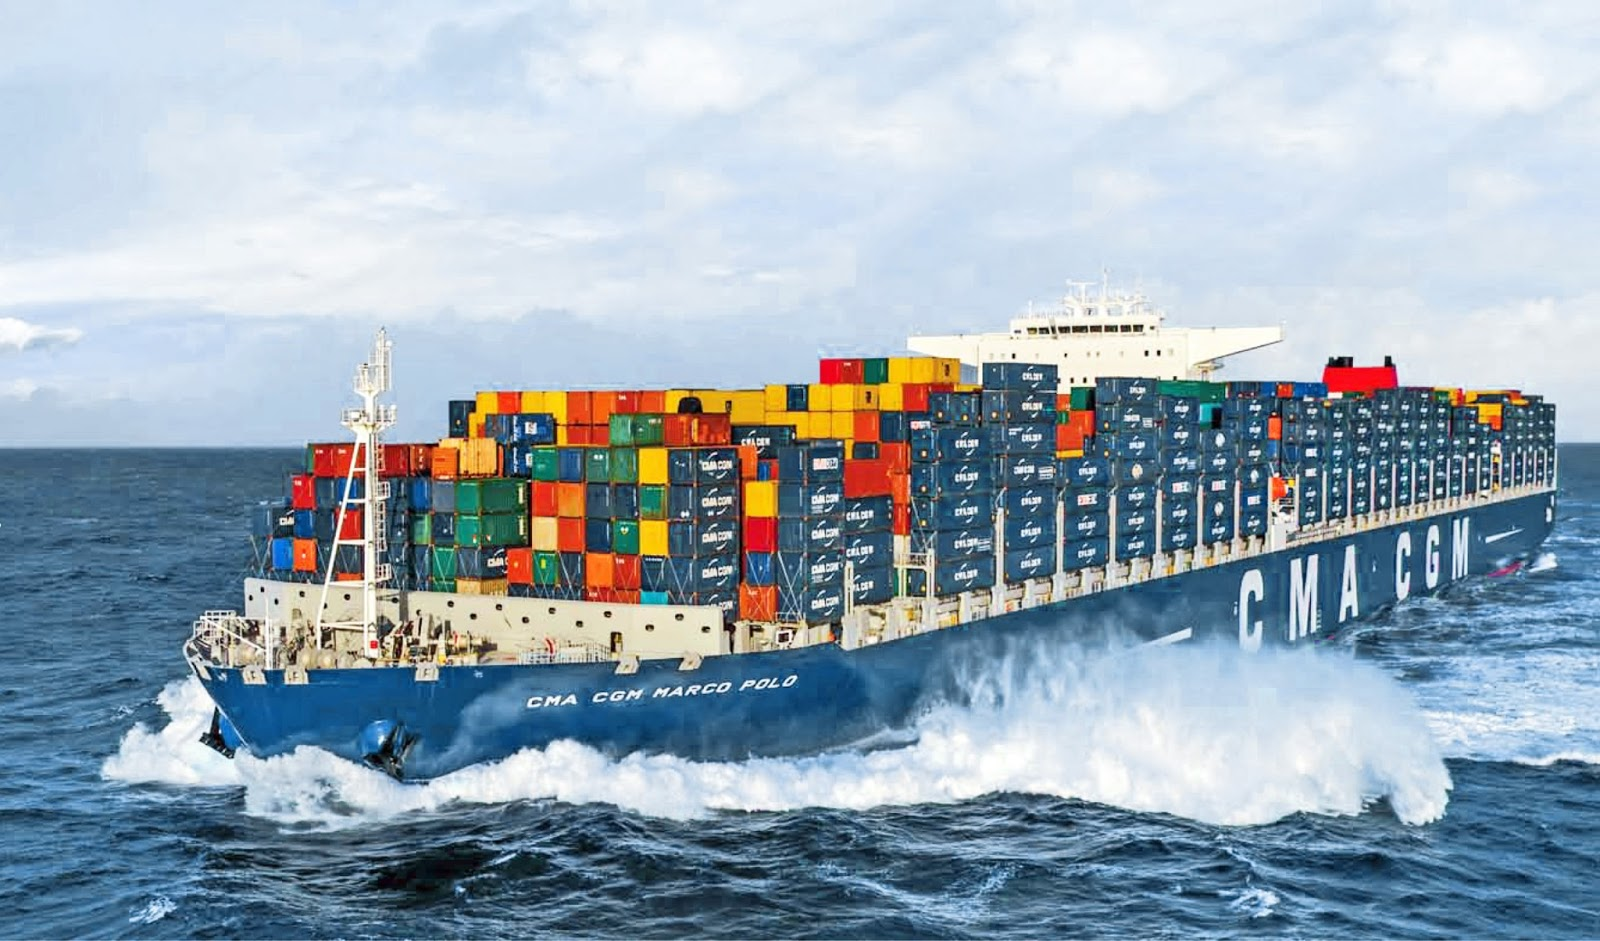 Cma Cgm Buying 50 000 Bamboo Eco Containers Marine